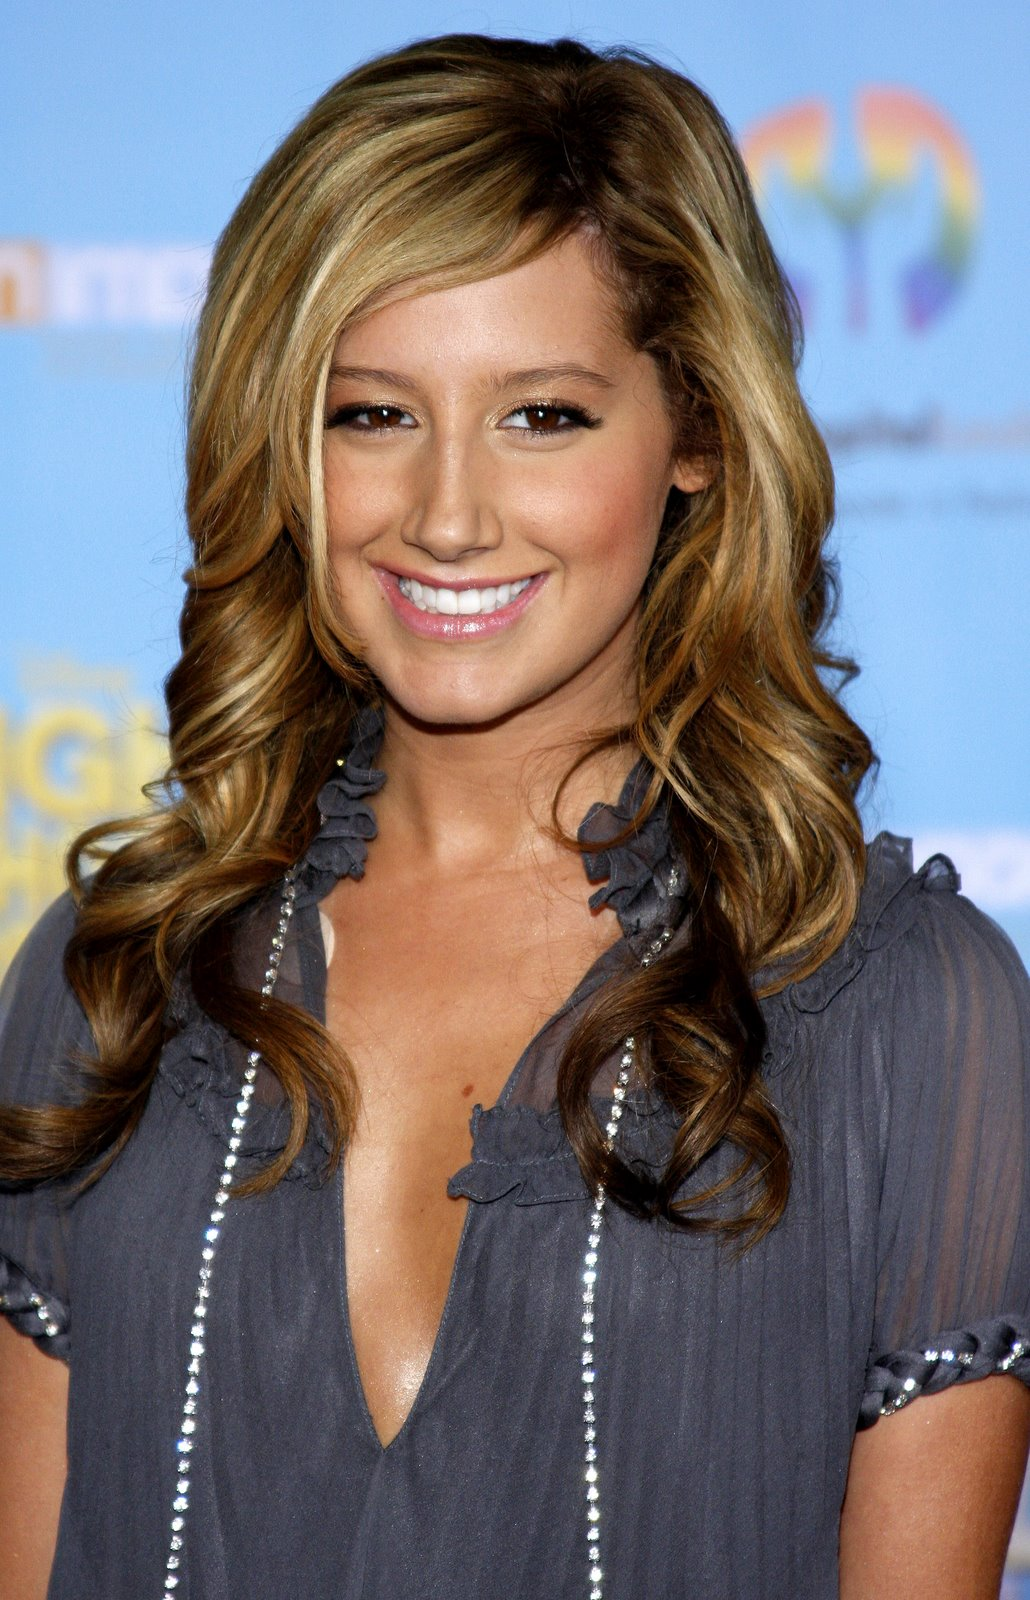 Latest Hairstyles, Long Hairstyle 2011, Hairstyle 2011, New Long Hairstyle 2011, Celebrity Long Hairstyles 2127